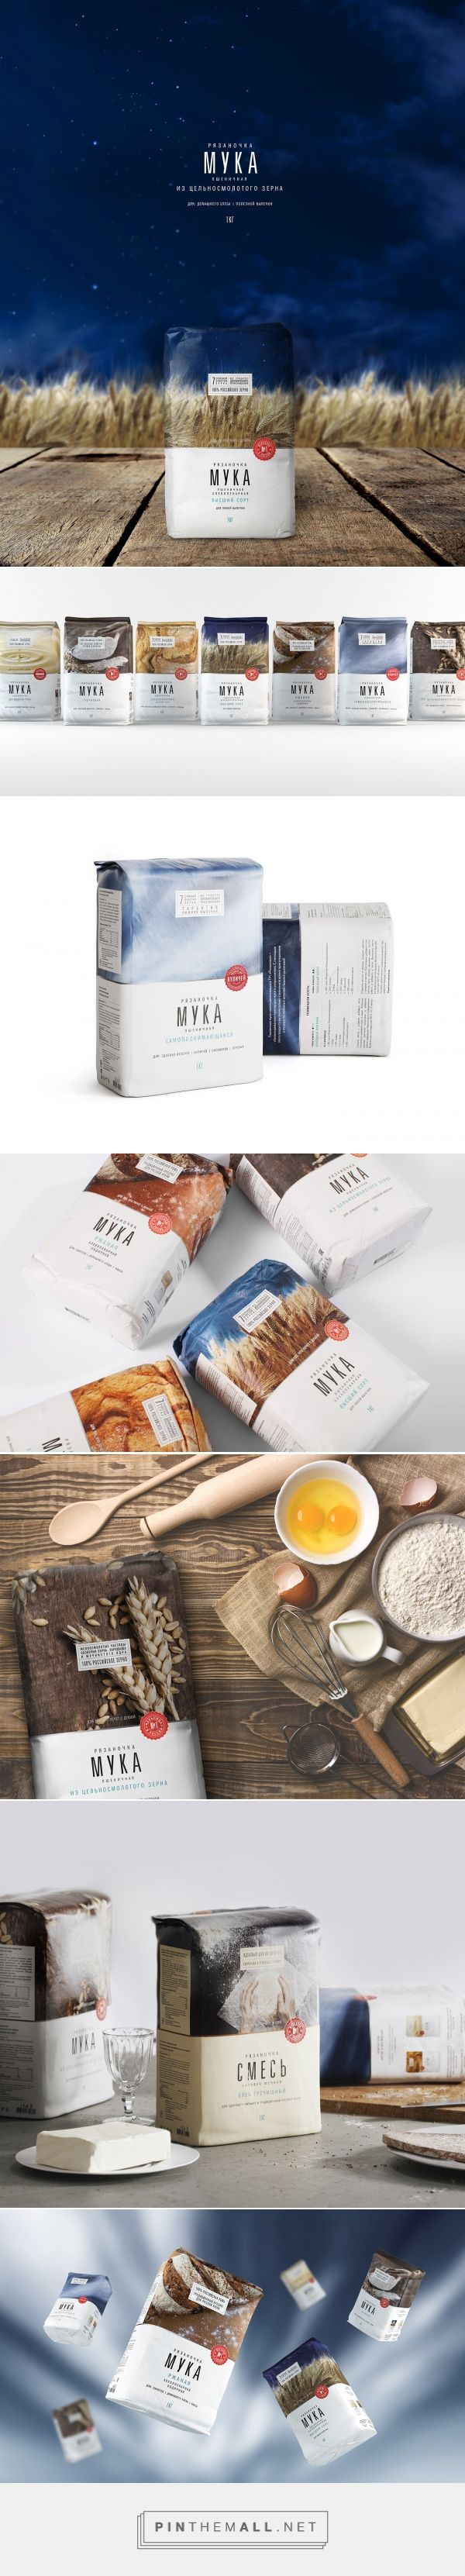 Ryazanochka Flour Packaging by Chmybrand Studio